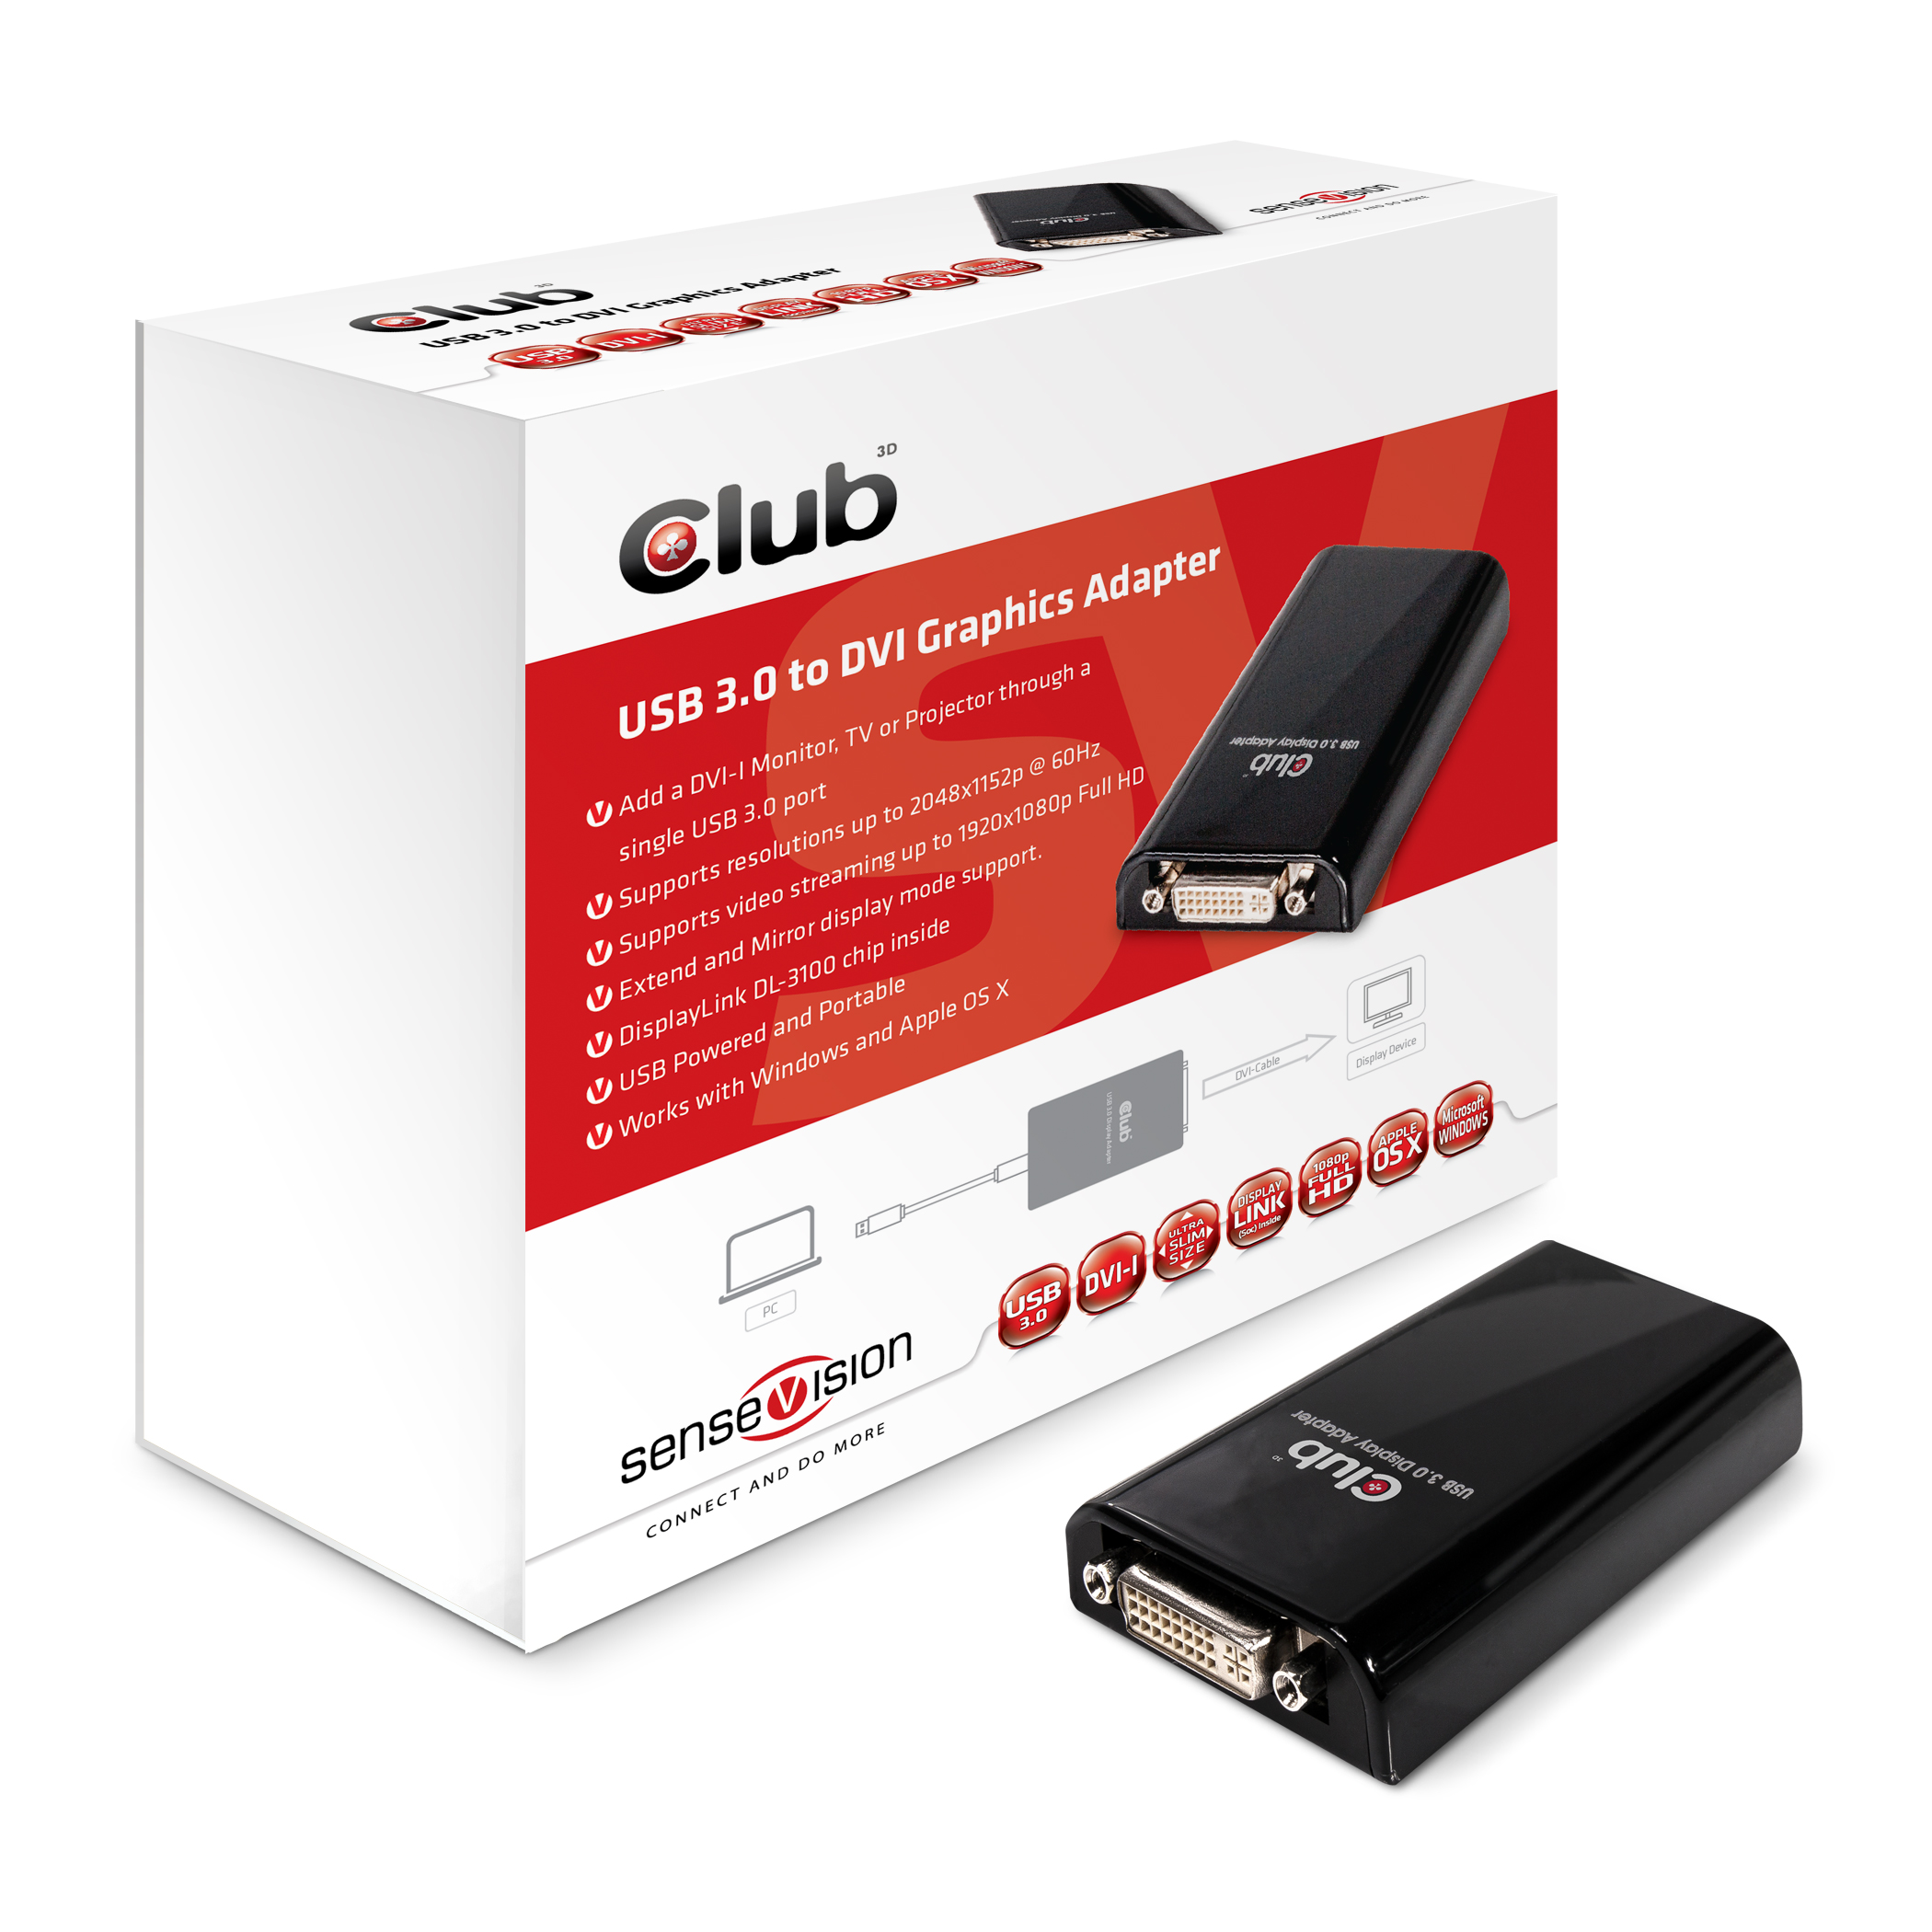 CLUB 3D USB 3.0 TO DVI ADAPTER